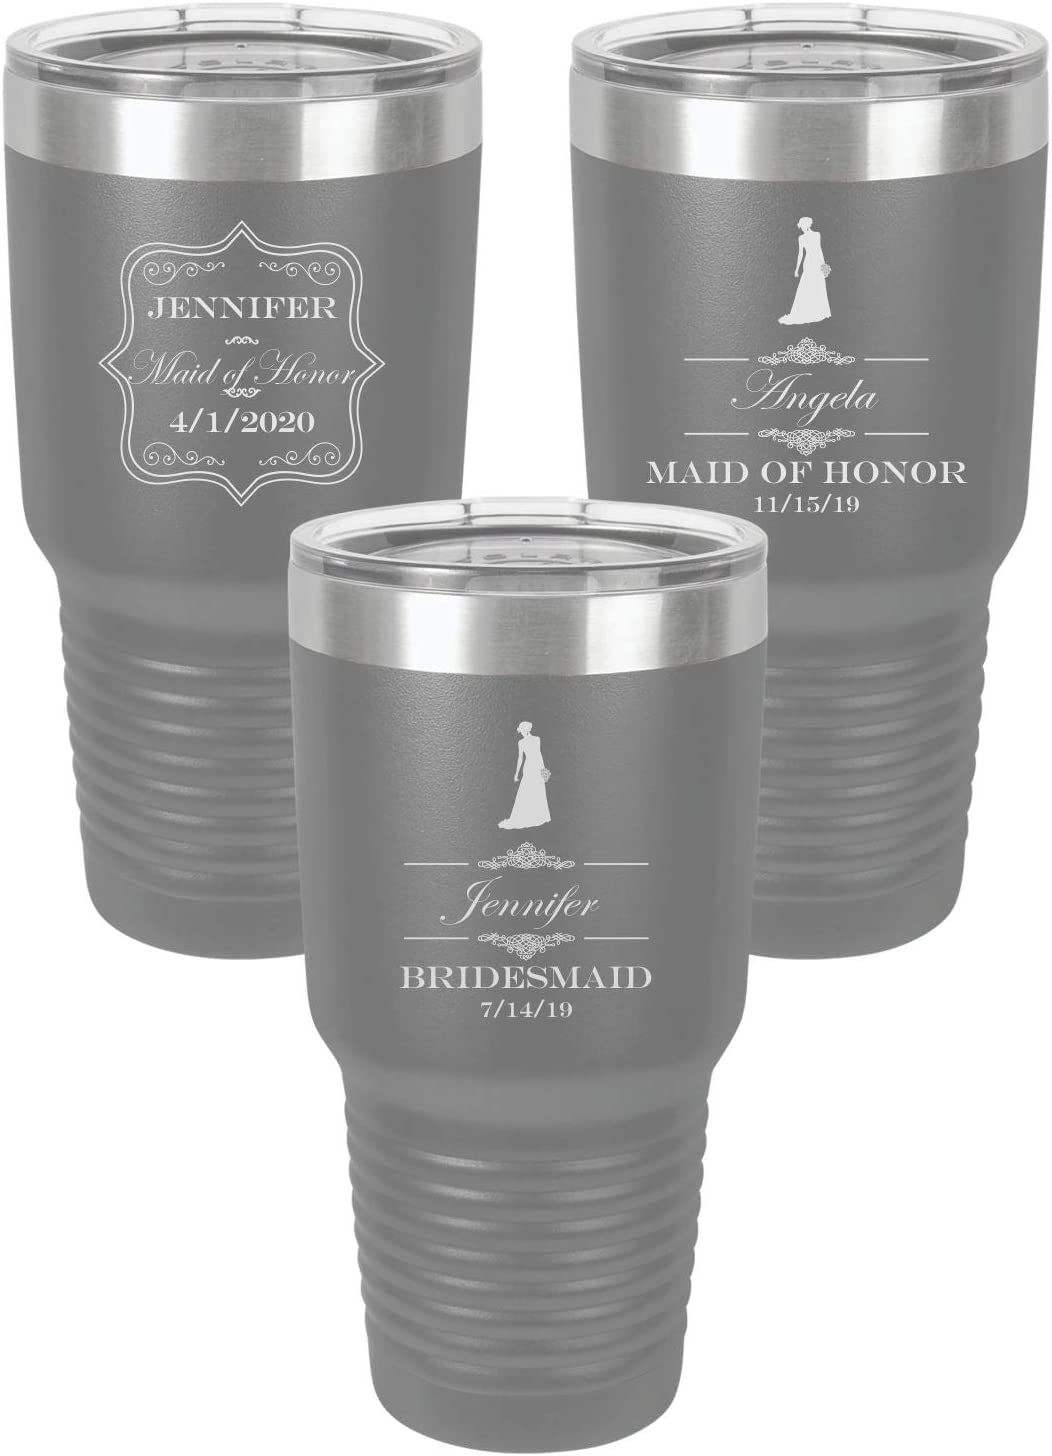 Bridesmaid Gift Stainless Tumbler Sets Bridal Party Gifts